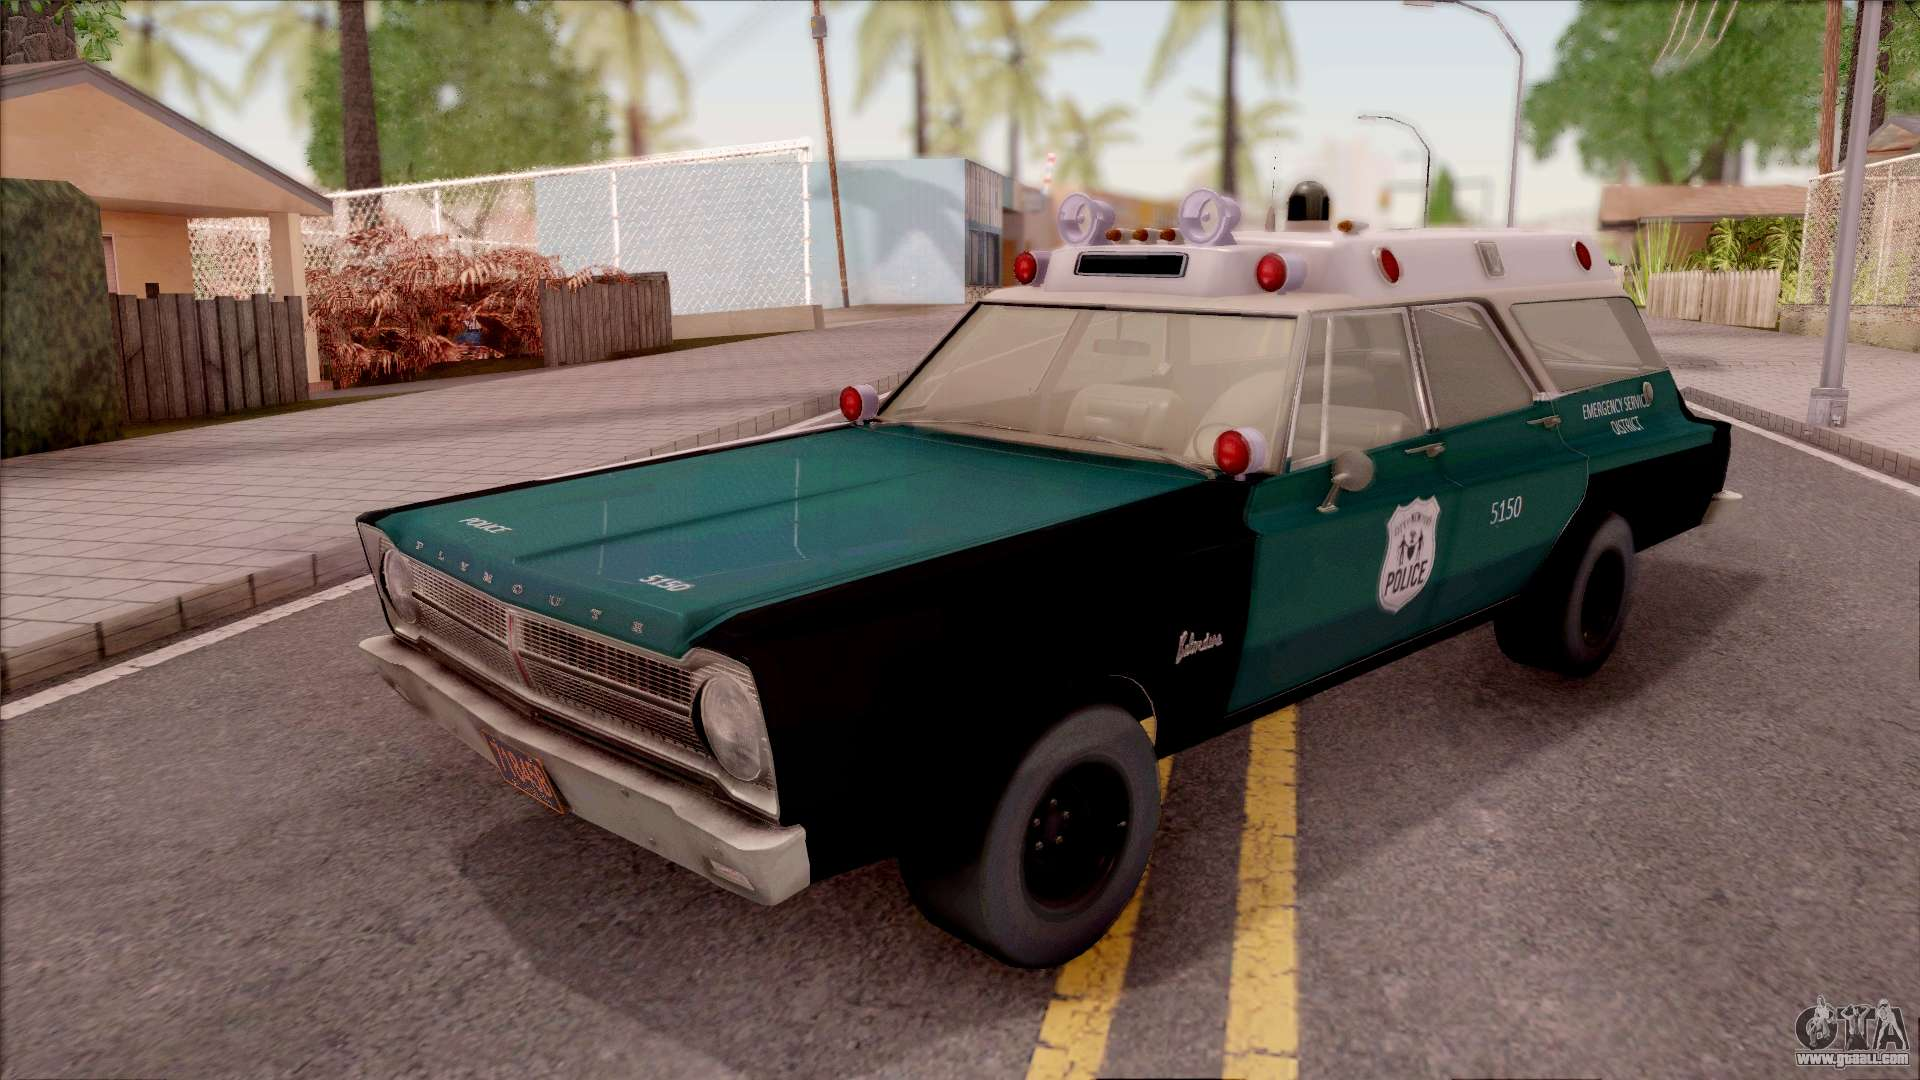 Plymouth For Gta San Andreas 1973 Satellite Station Wagon Belvedere 1965 Nypd Final